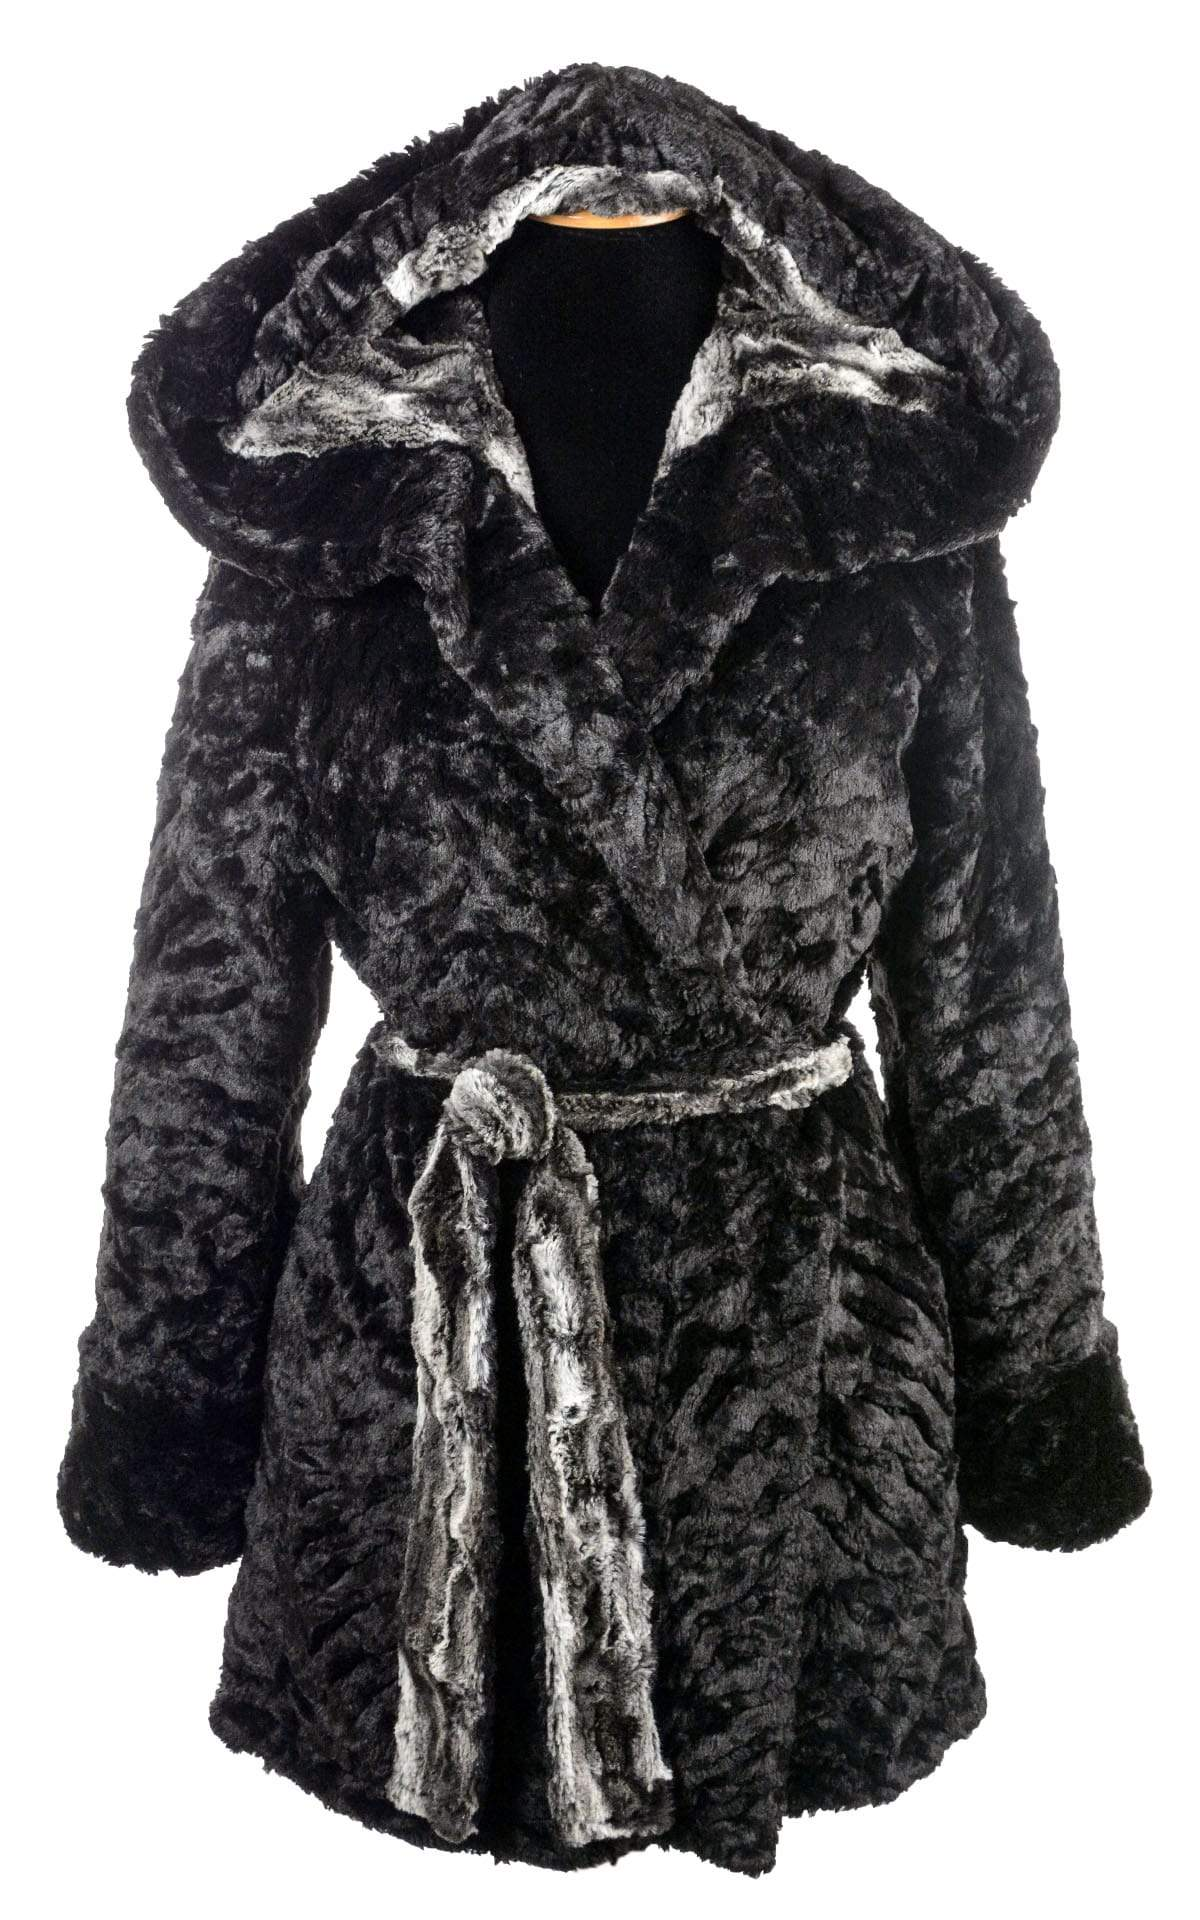 Joplin Coat (Robe), Reversible less pockets - Luxury Faux Fur Agate in Black with Cuddly Fur in Black (Only One Medium Left!)